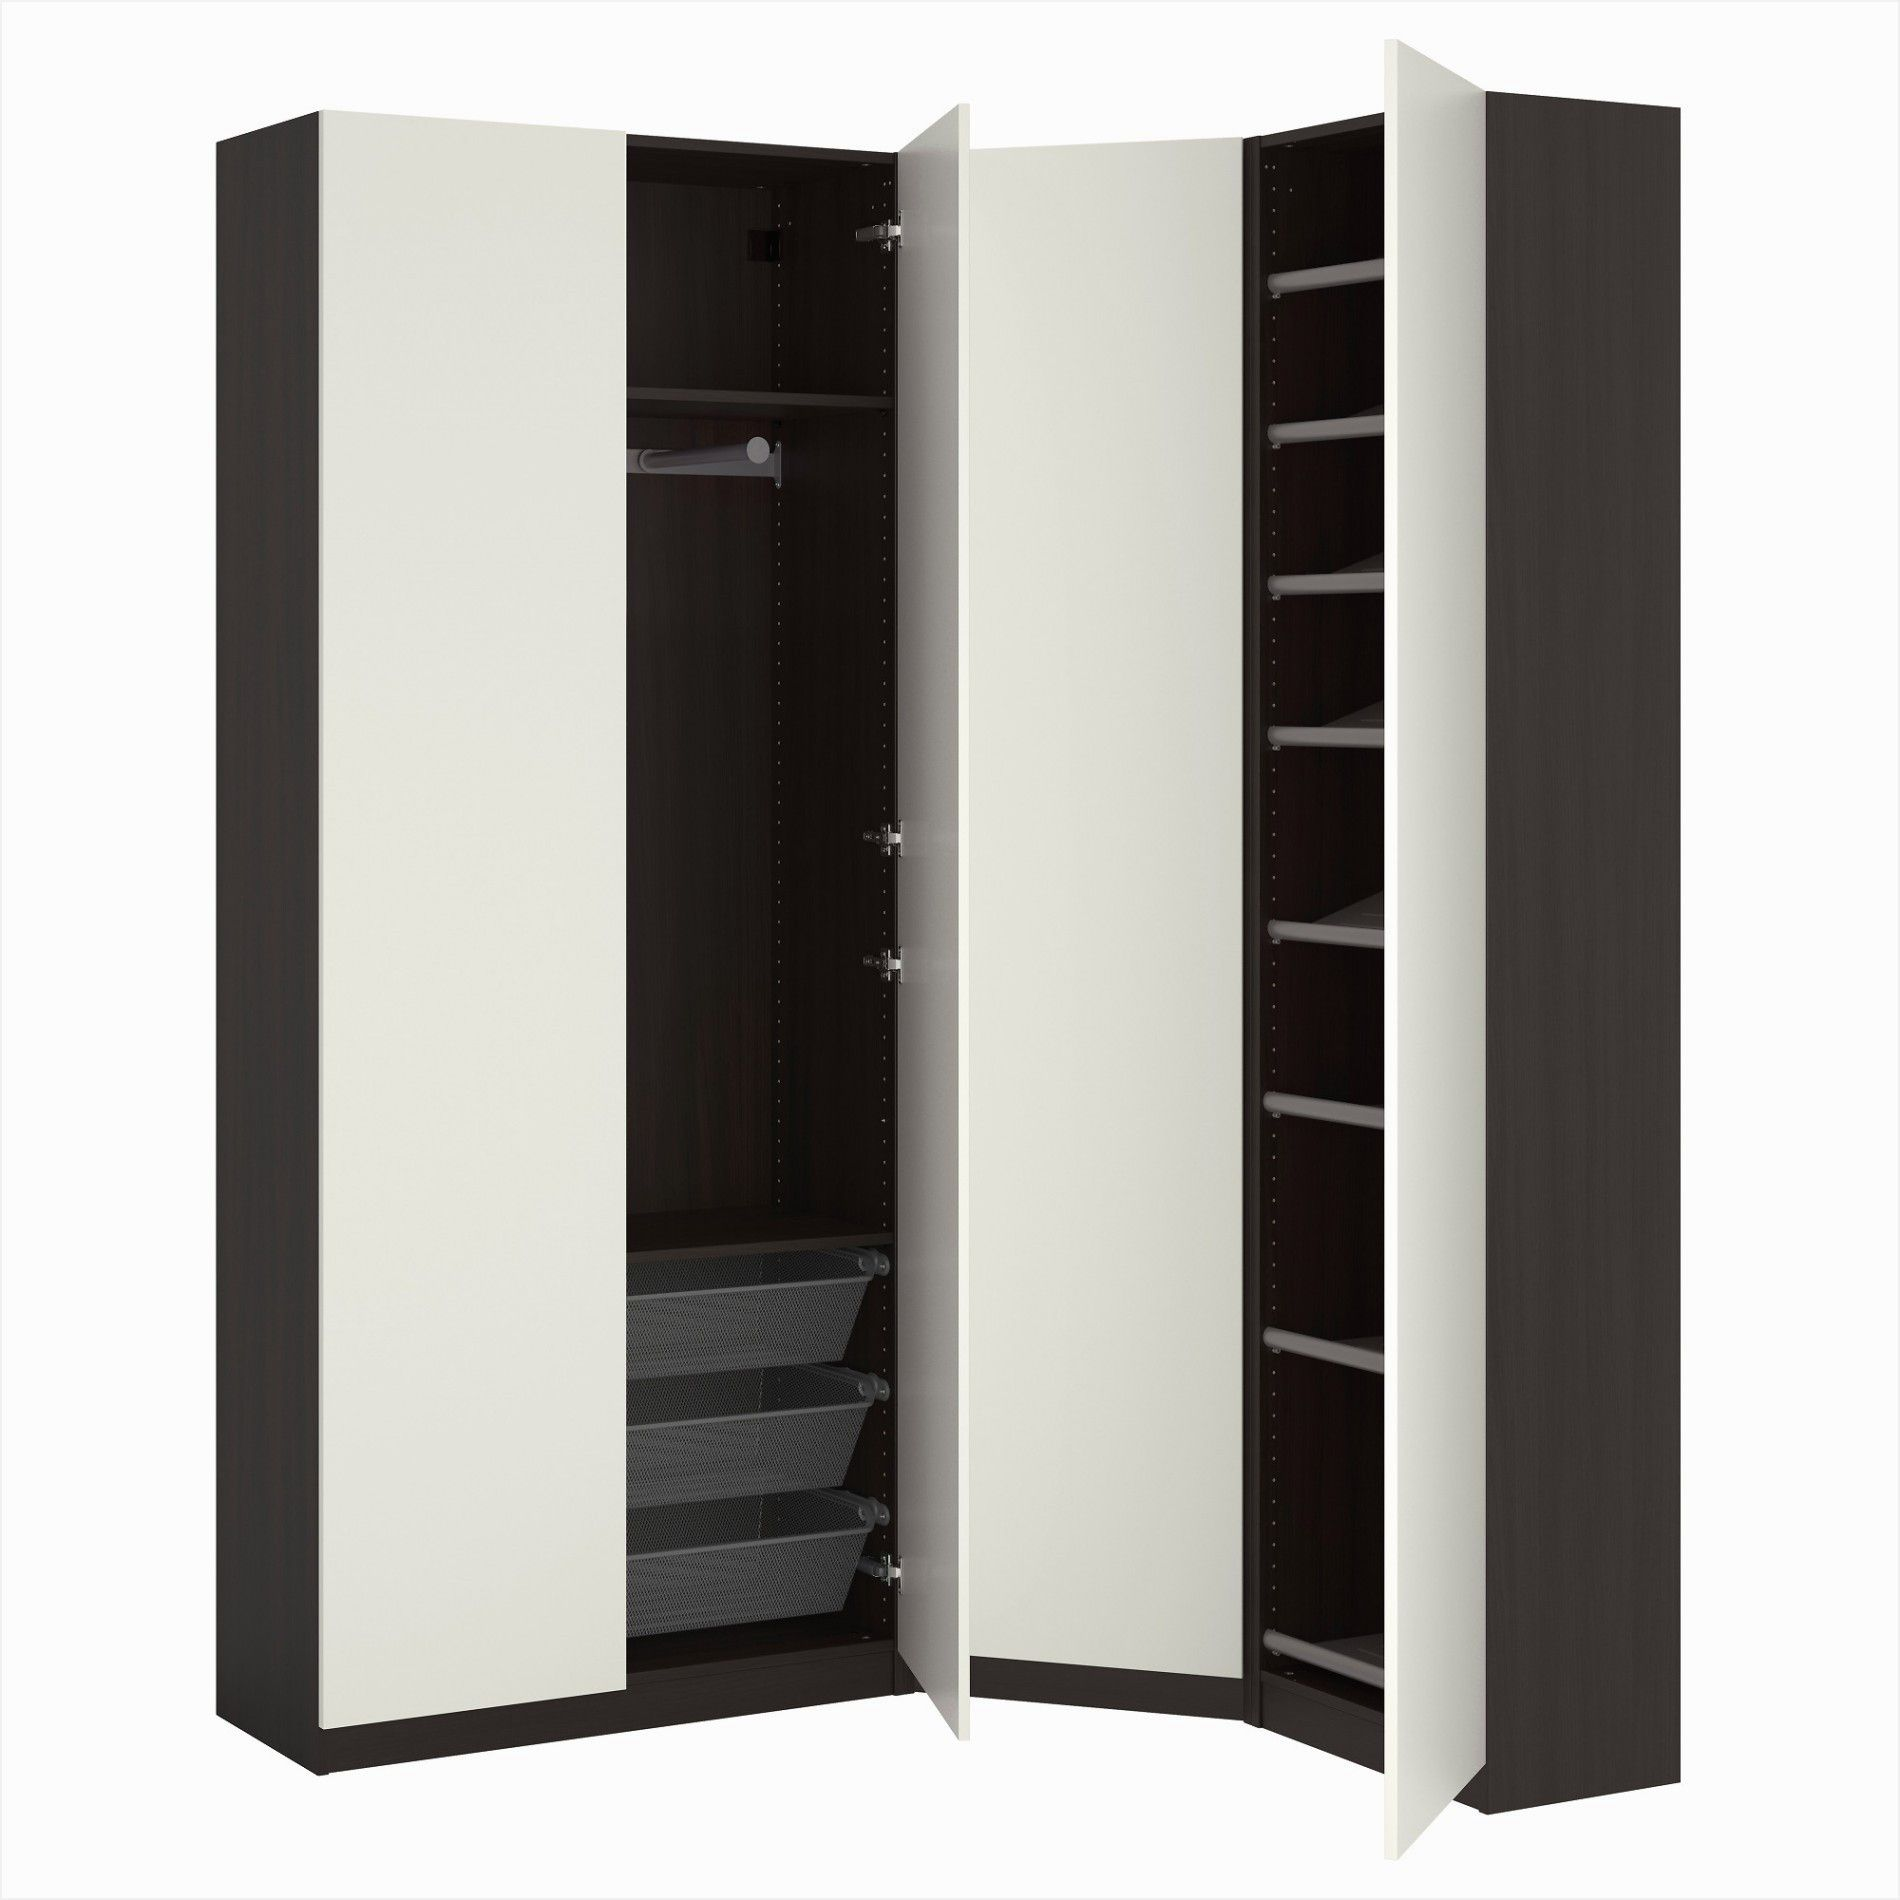 Armoire Conforama Porte Coulissante Armoire Conforama Porte Coulissante Armoire Coulissante Les Armoires Q Tall Cabinet Storage Locker Storage Cool Furniture